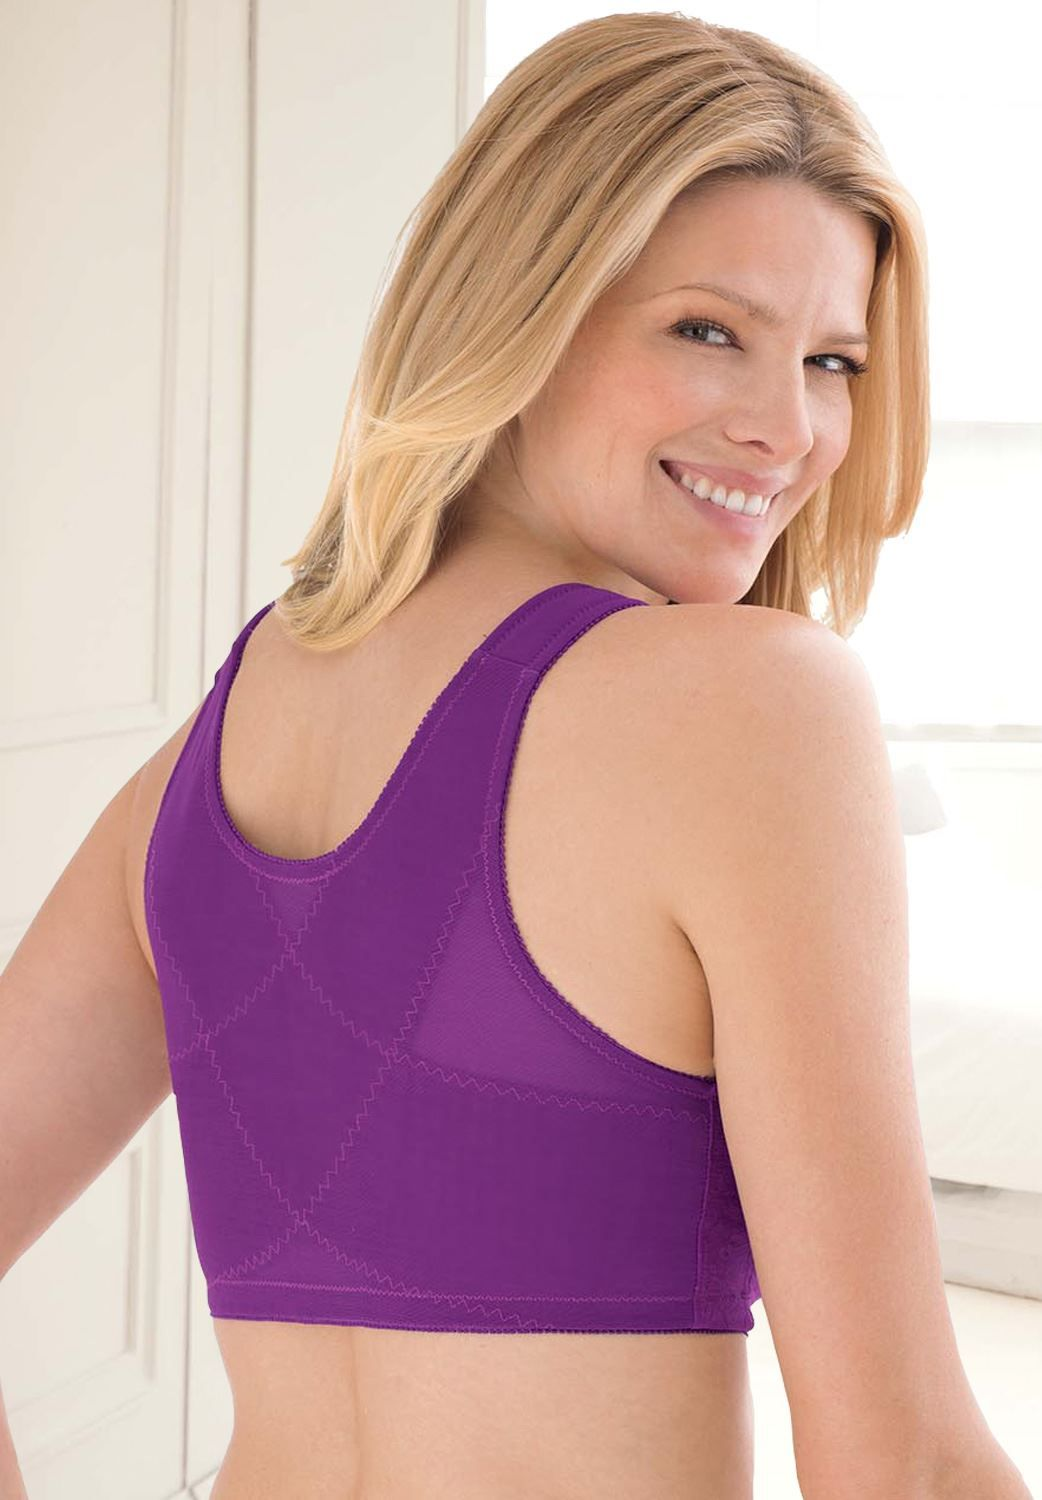 fc60f5a6b5c7f Posture Support Soft Cup Bra by Comfort Choice®